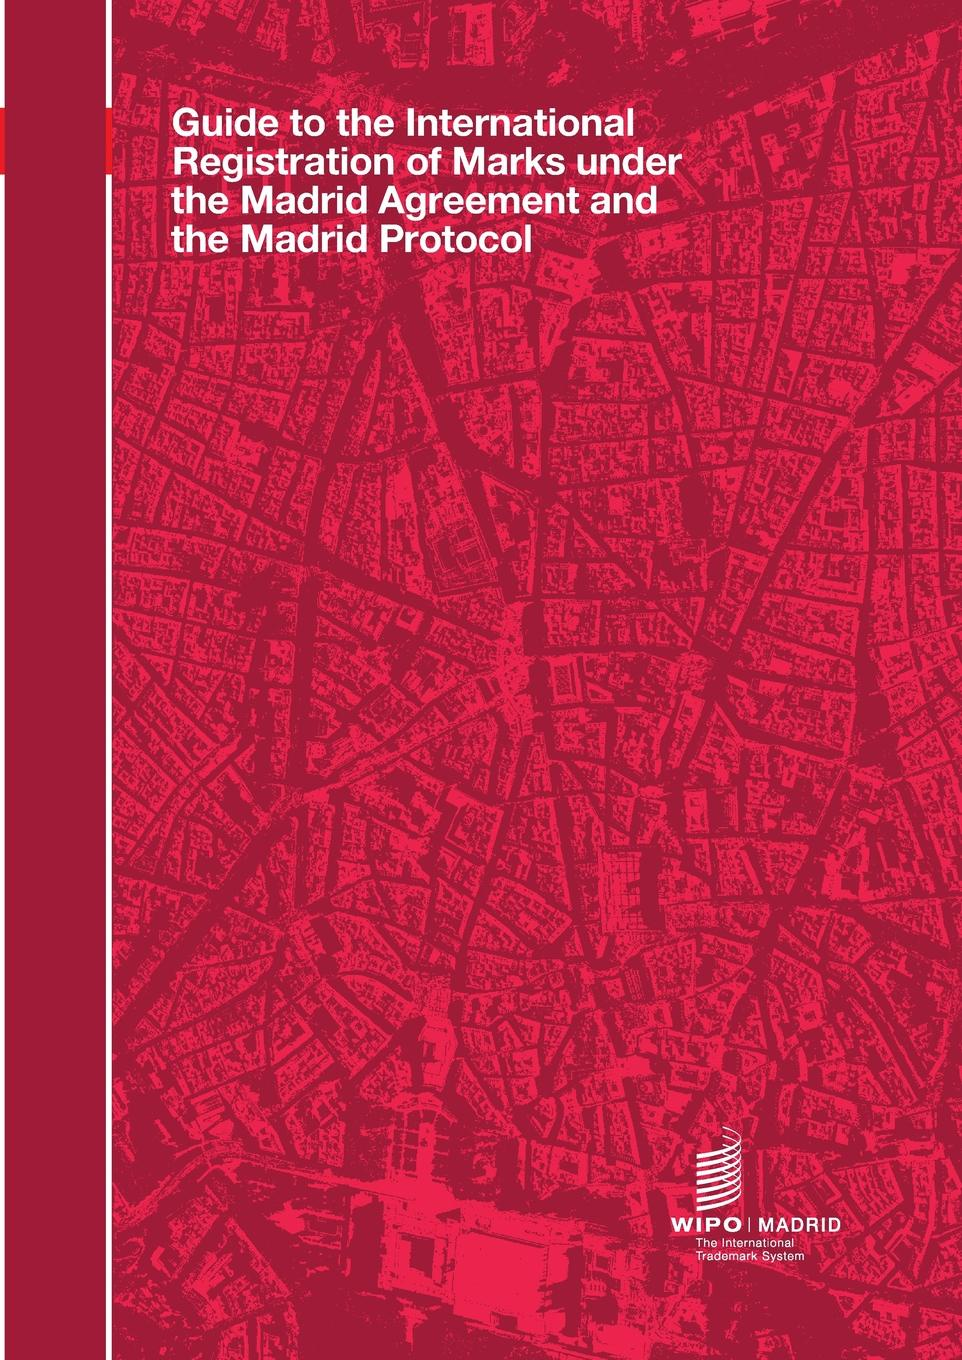 Guide to the International Registration of Marks under the Madrid Agreement and the Madrid Protocol fredi leis madrid